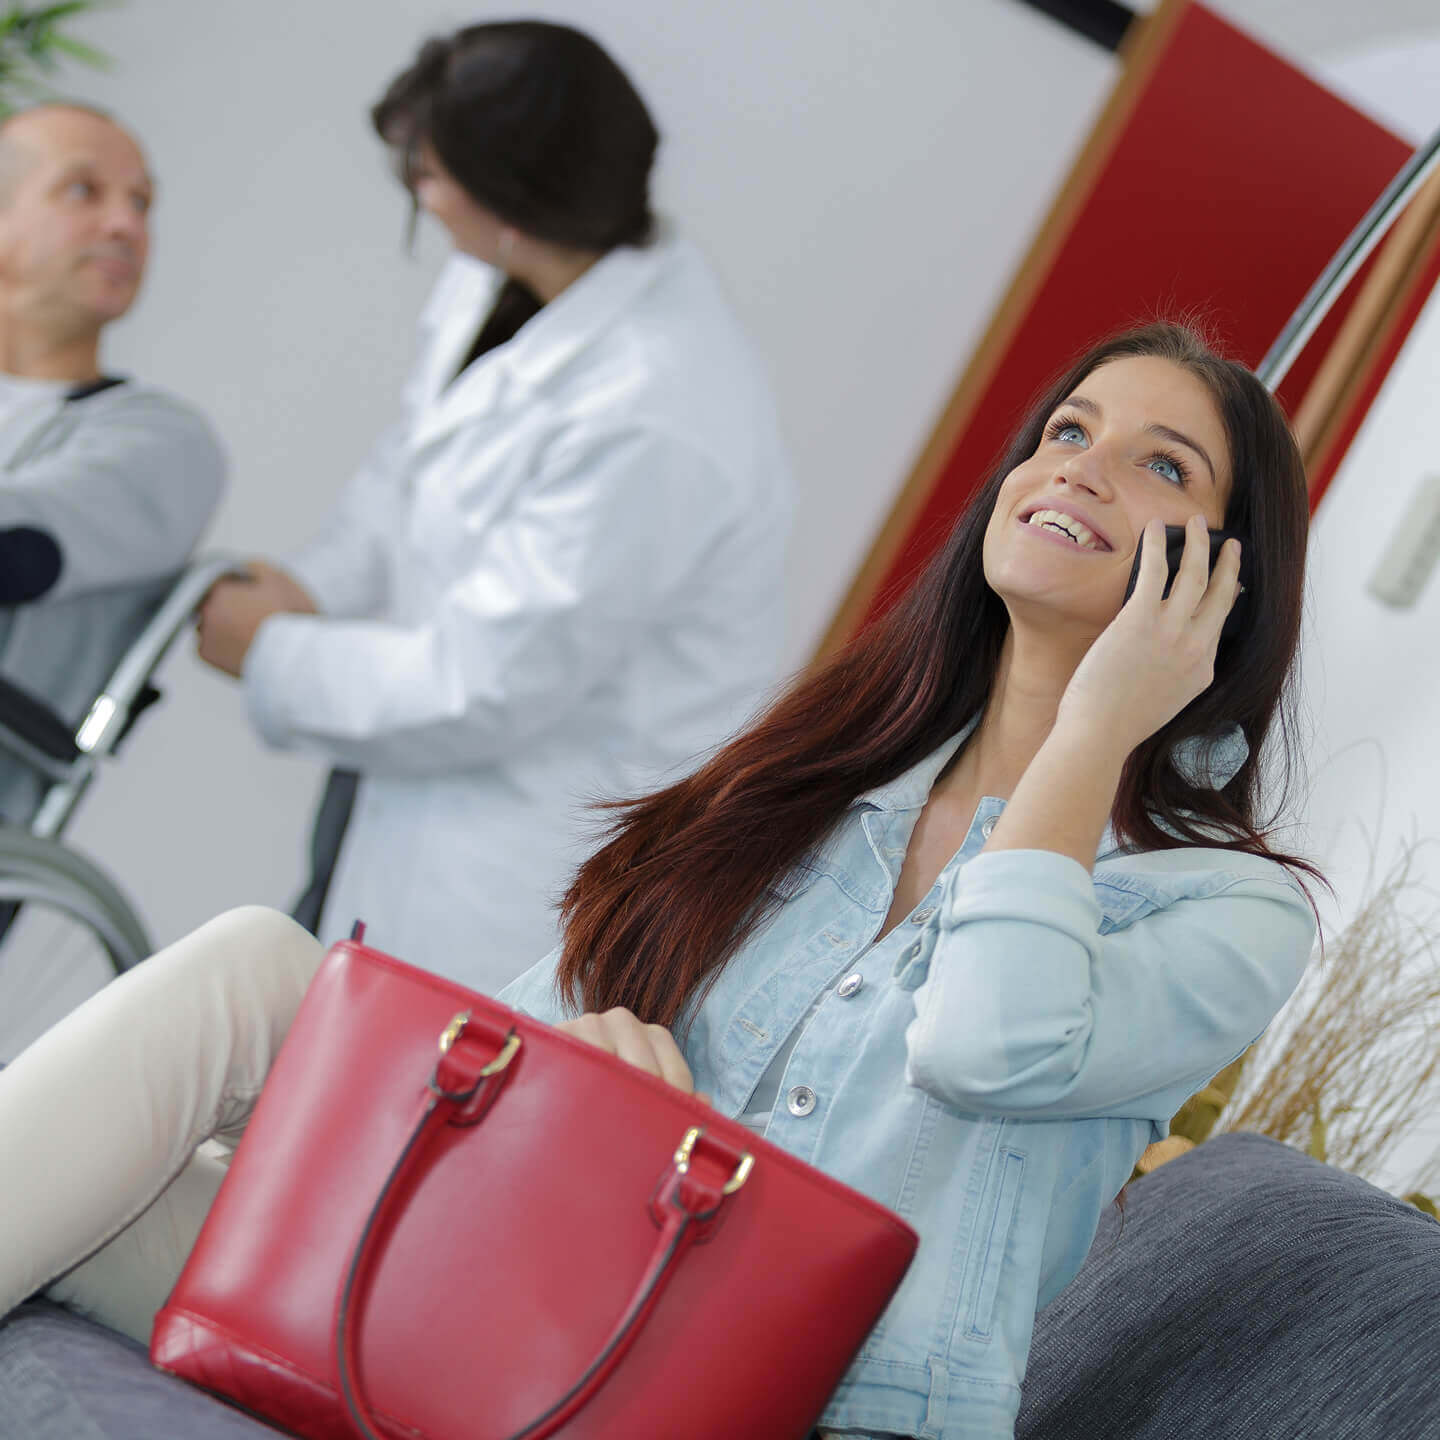 ChargeBox alleviating stress in hospital waiting rooms